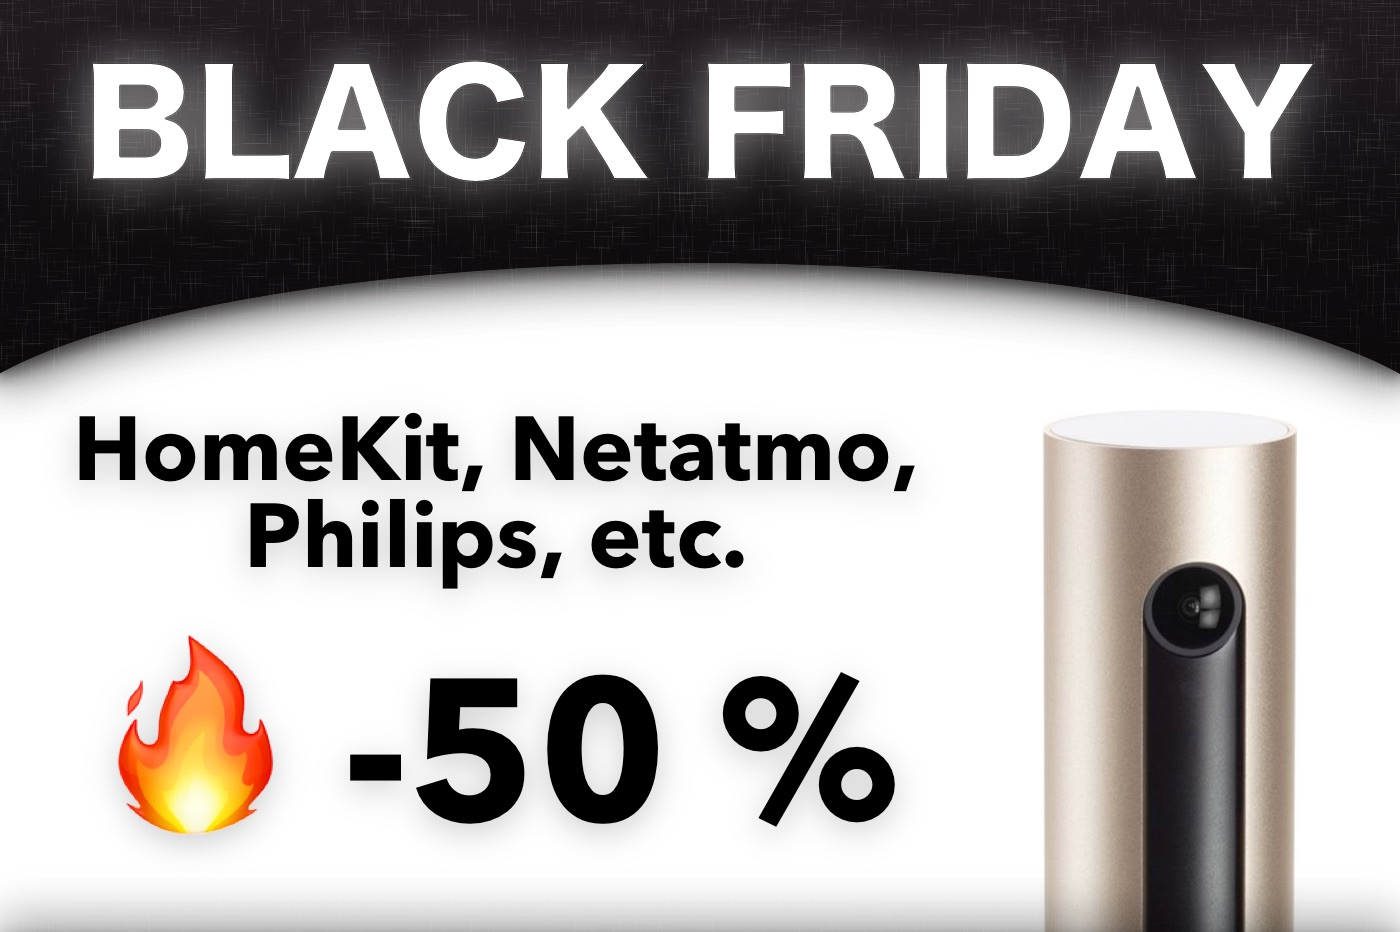 Black Friday HomeKit